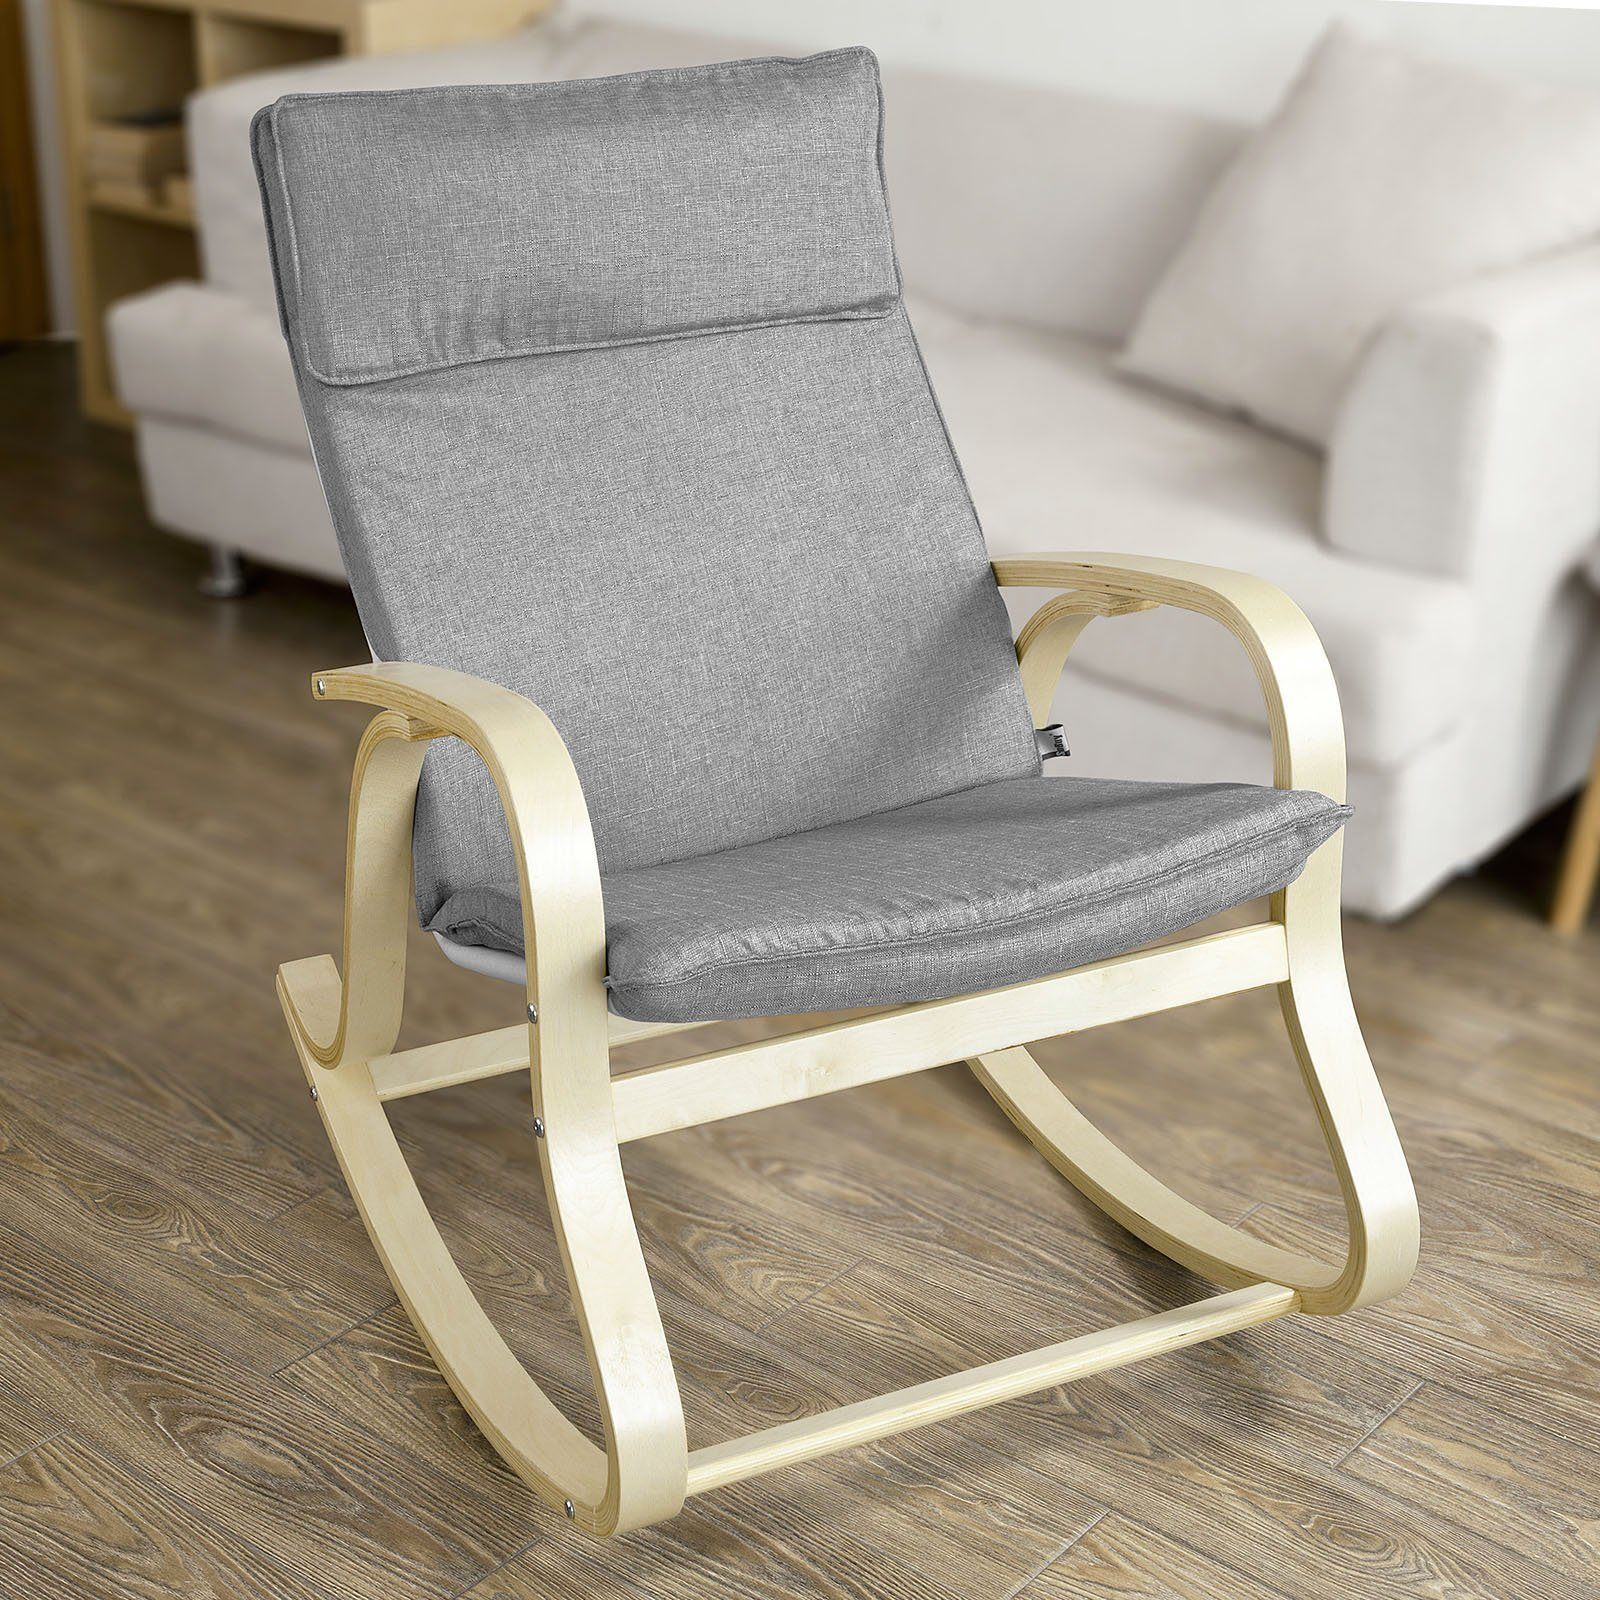 Haotian FST15-DG, Comfortable Relax Rocking Chair, Lounge Chair Relax Chair with Cotton Fabric Cushion by Haotian